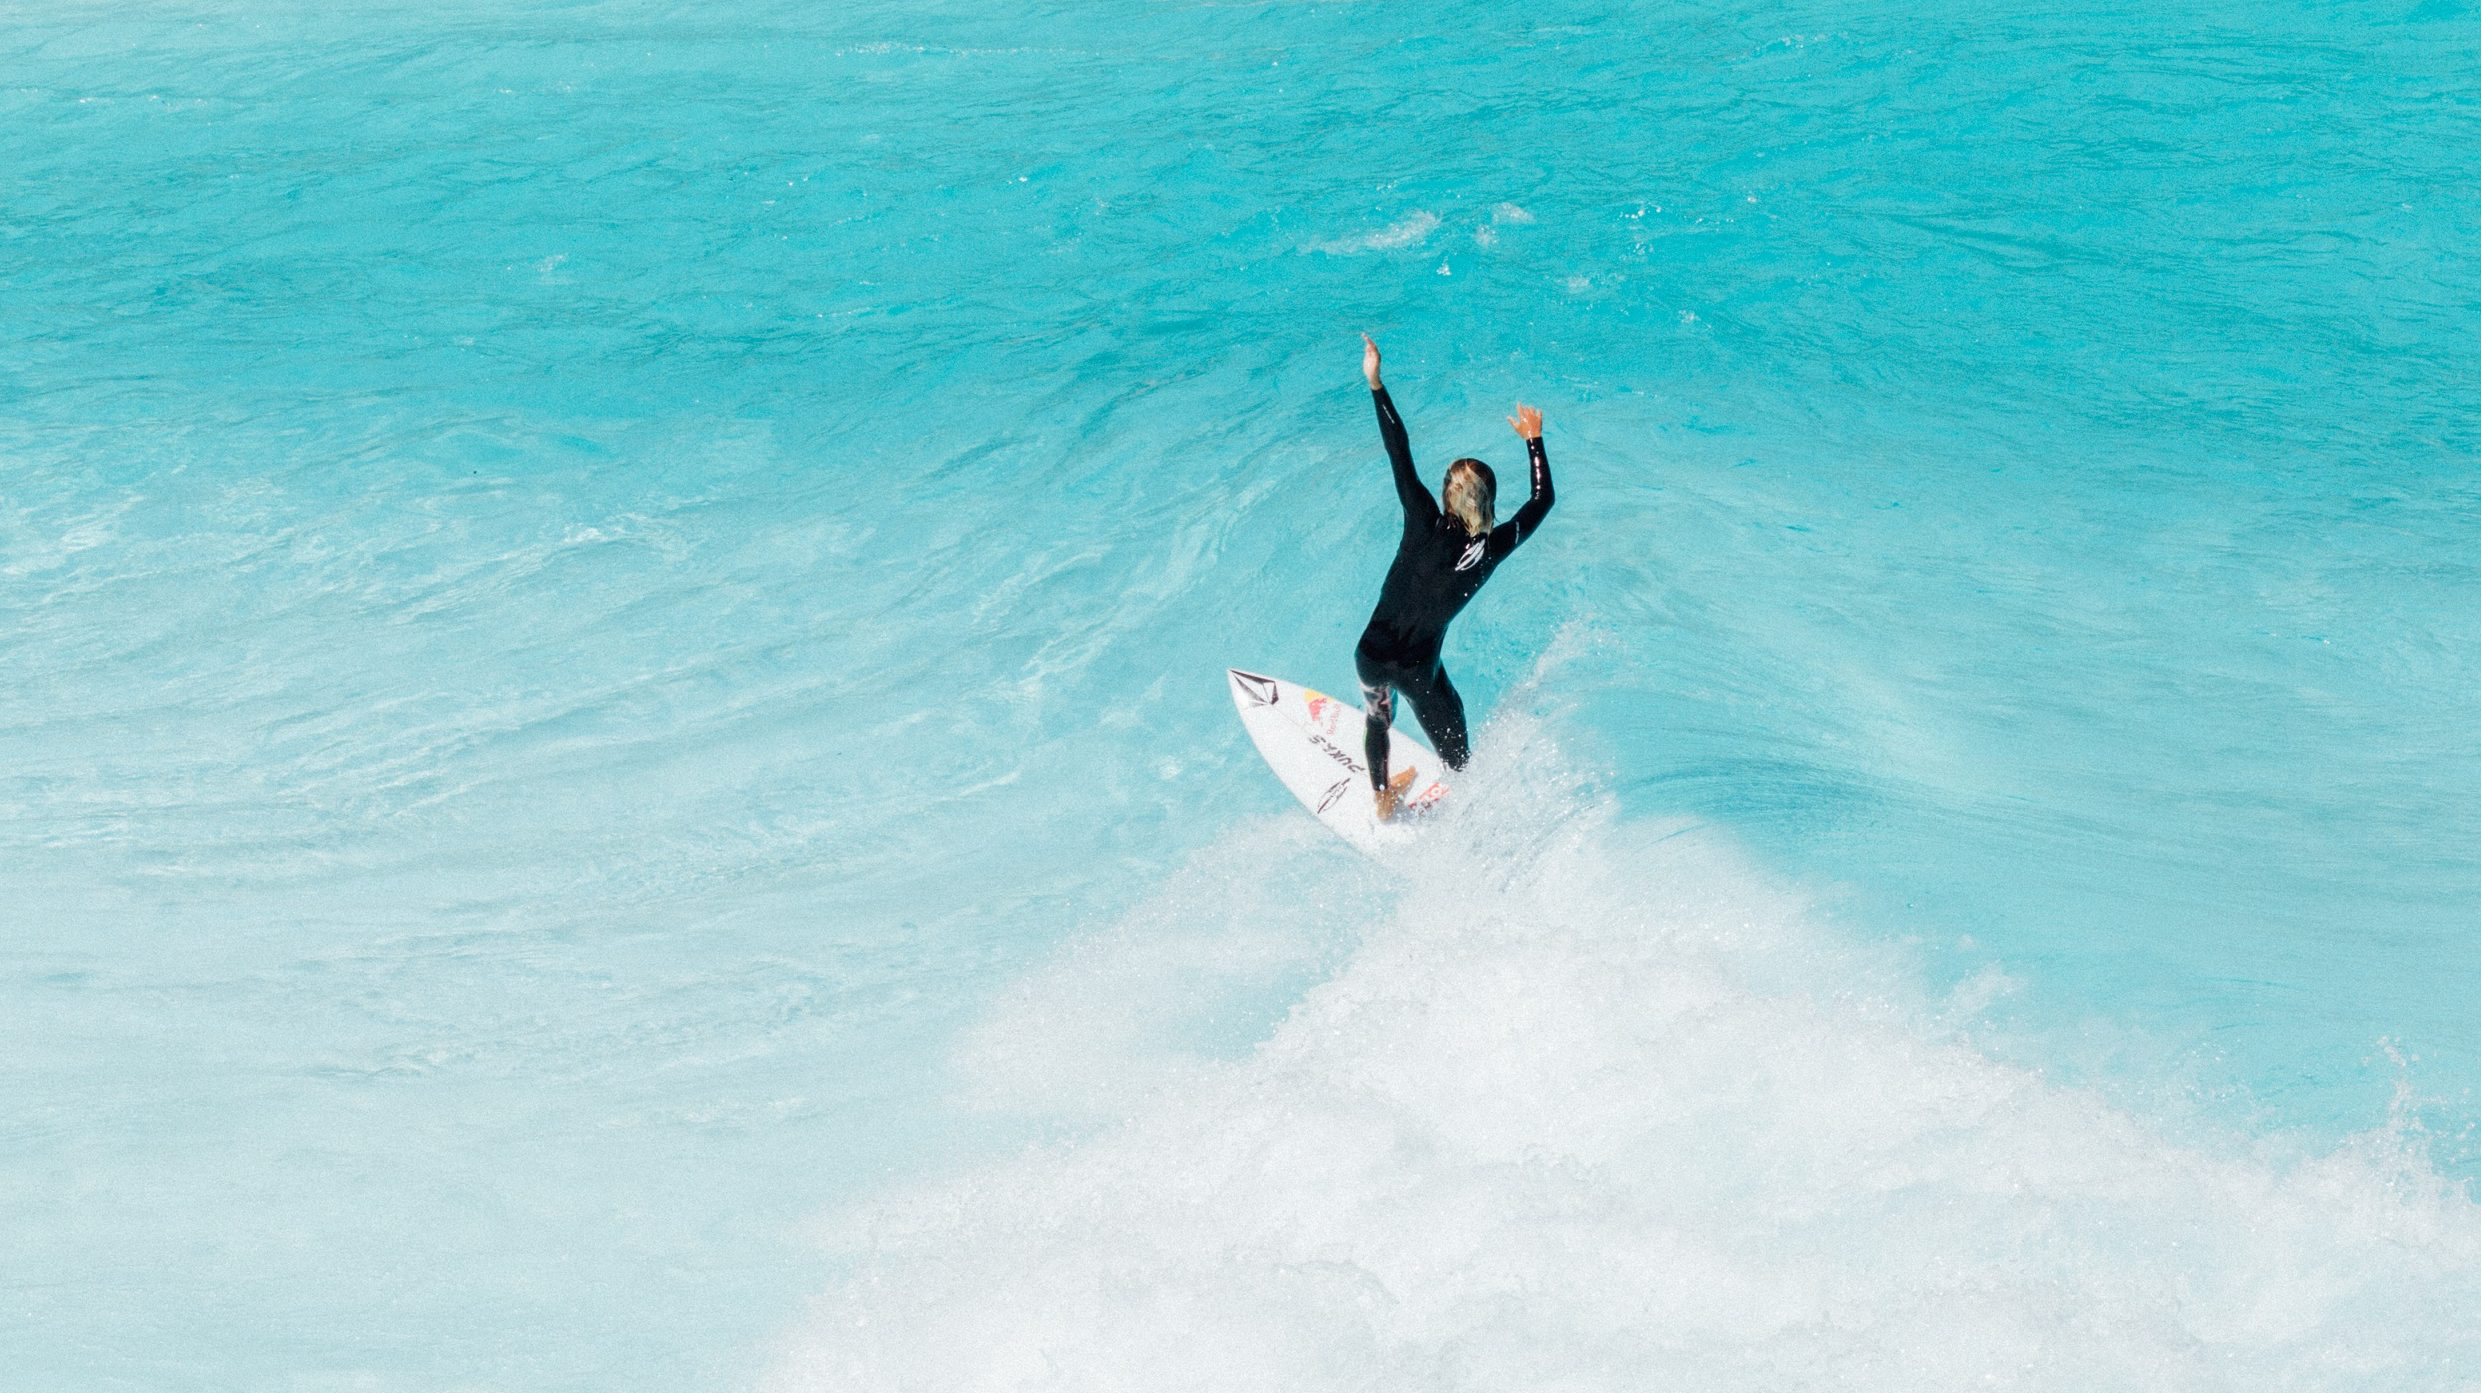 Mateus-Herdy surfing the wavegarden cove